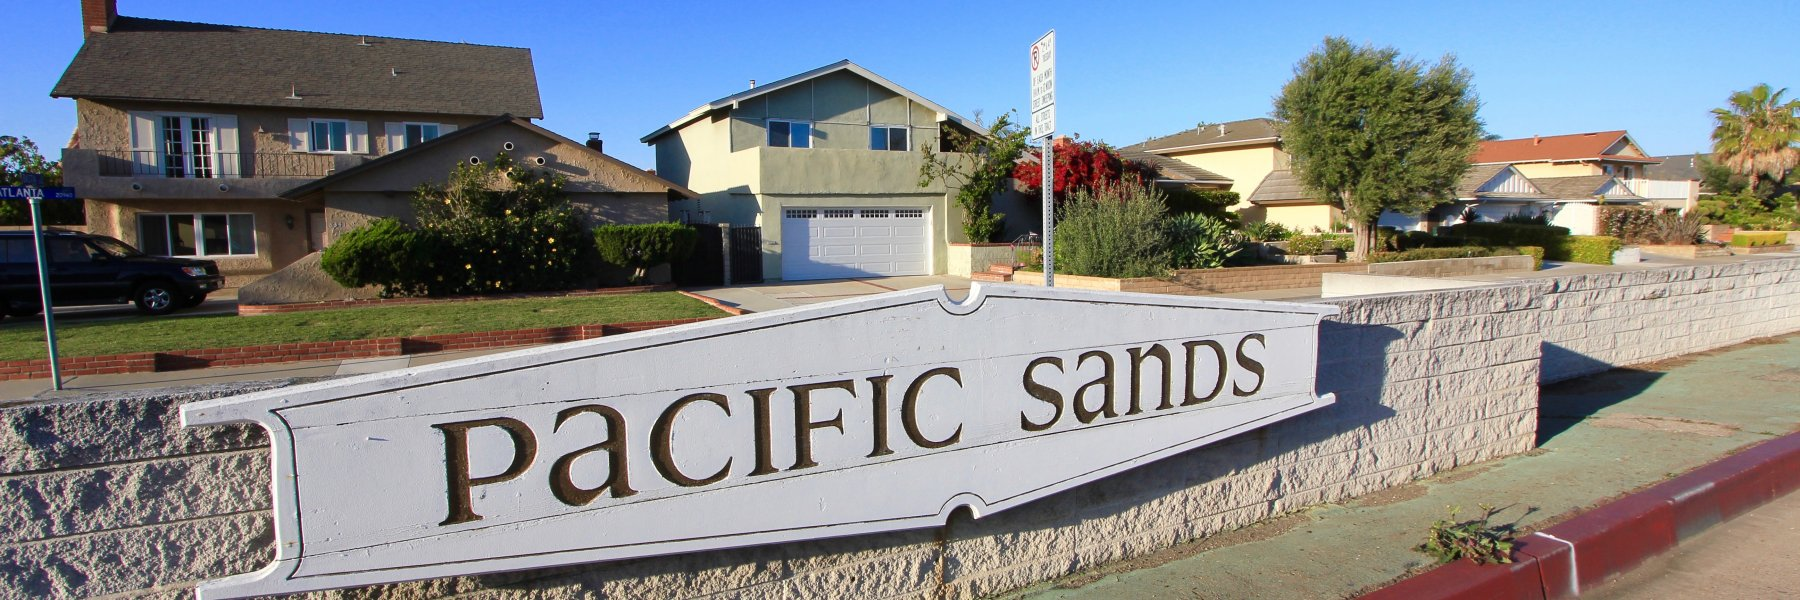 Pacific Sands is a community of homes in Huntington Beach California